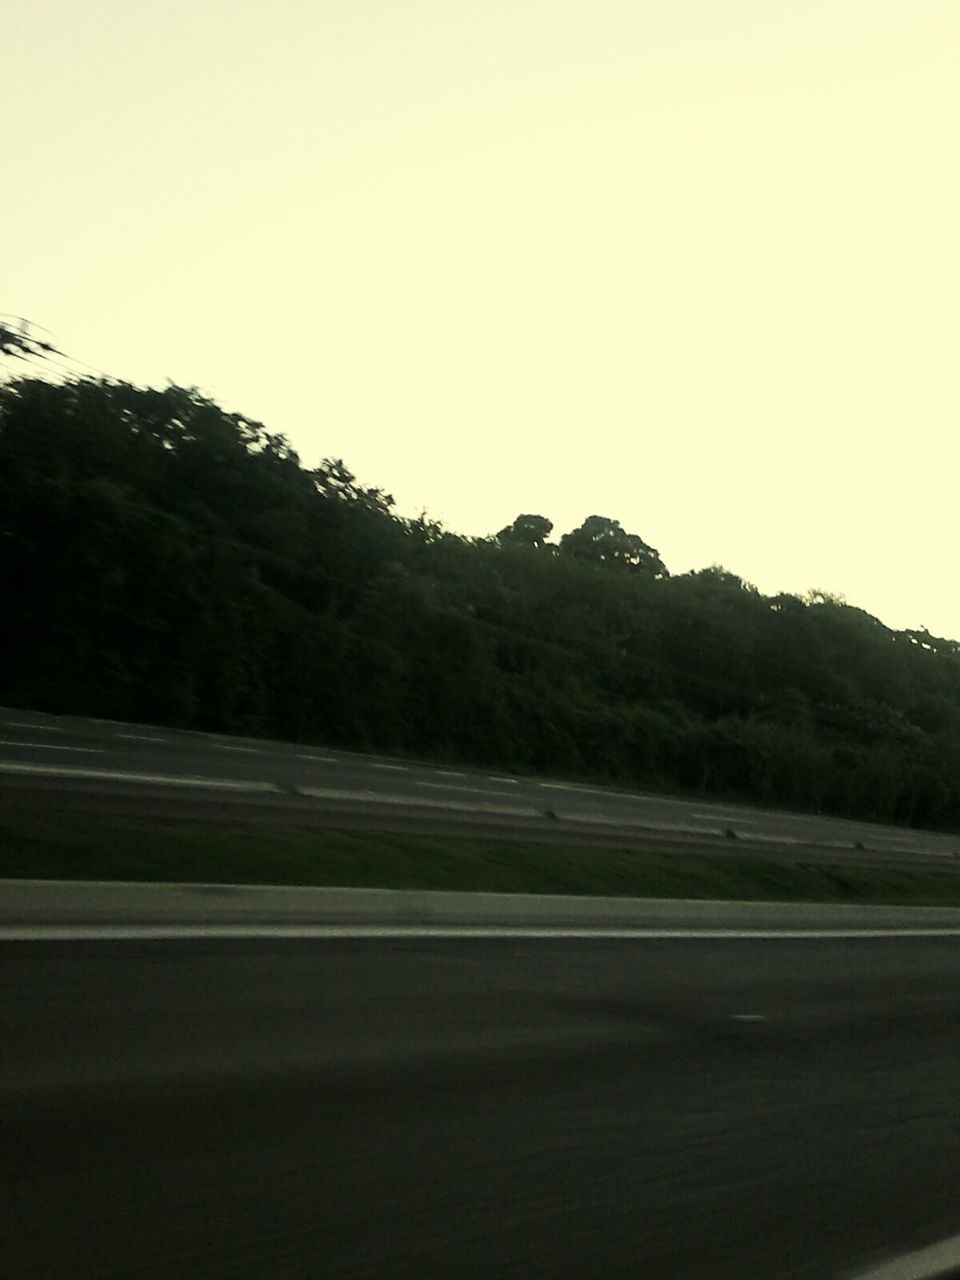 road, clear sky, no people, tree, outdoors, transportation, nature, landscape, day, sky, mountain